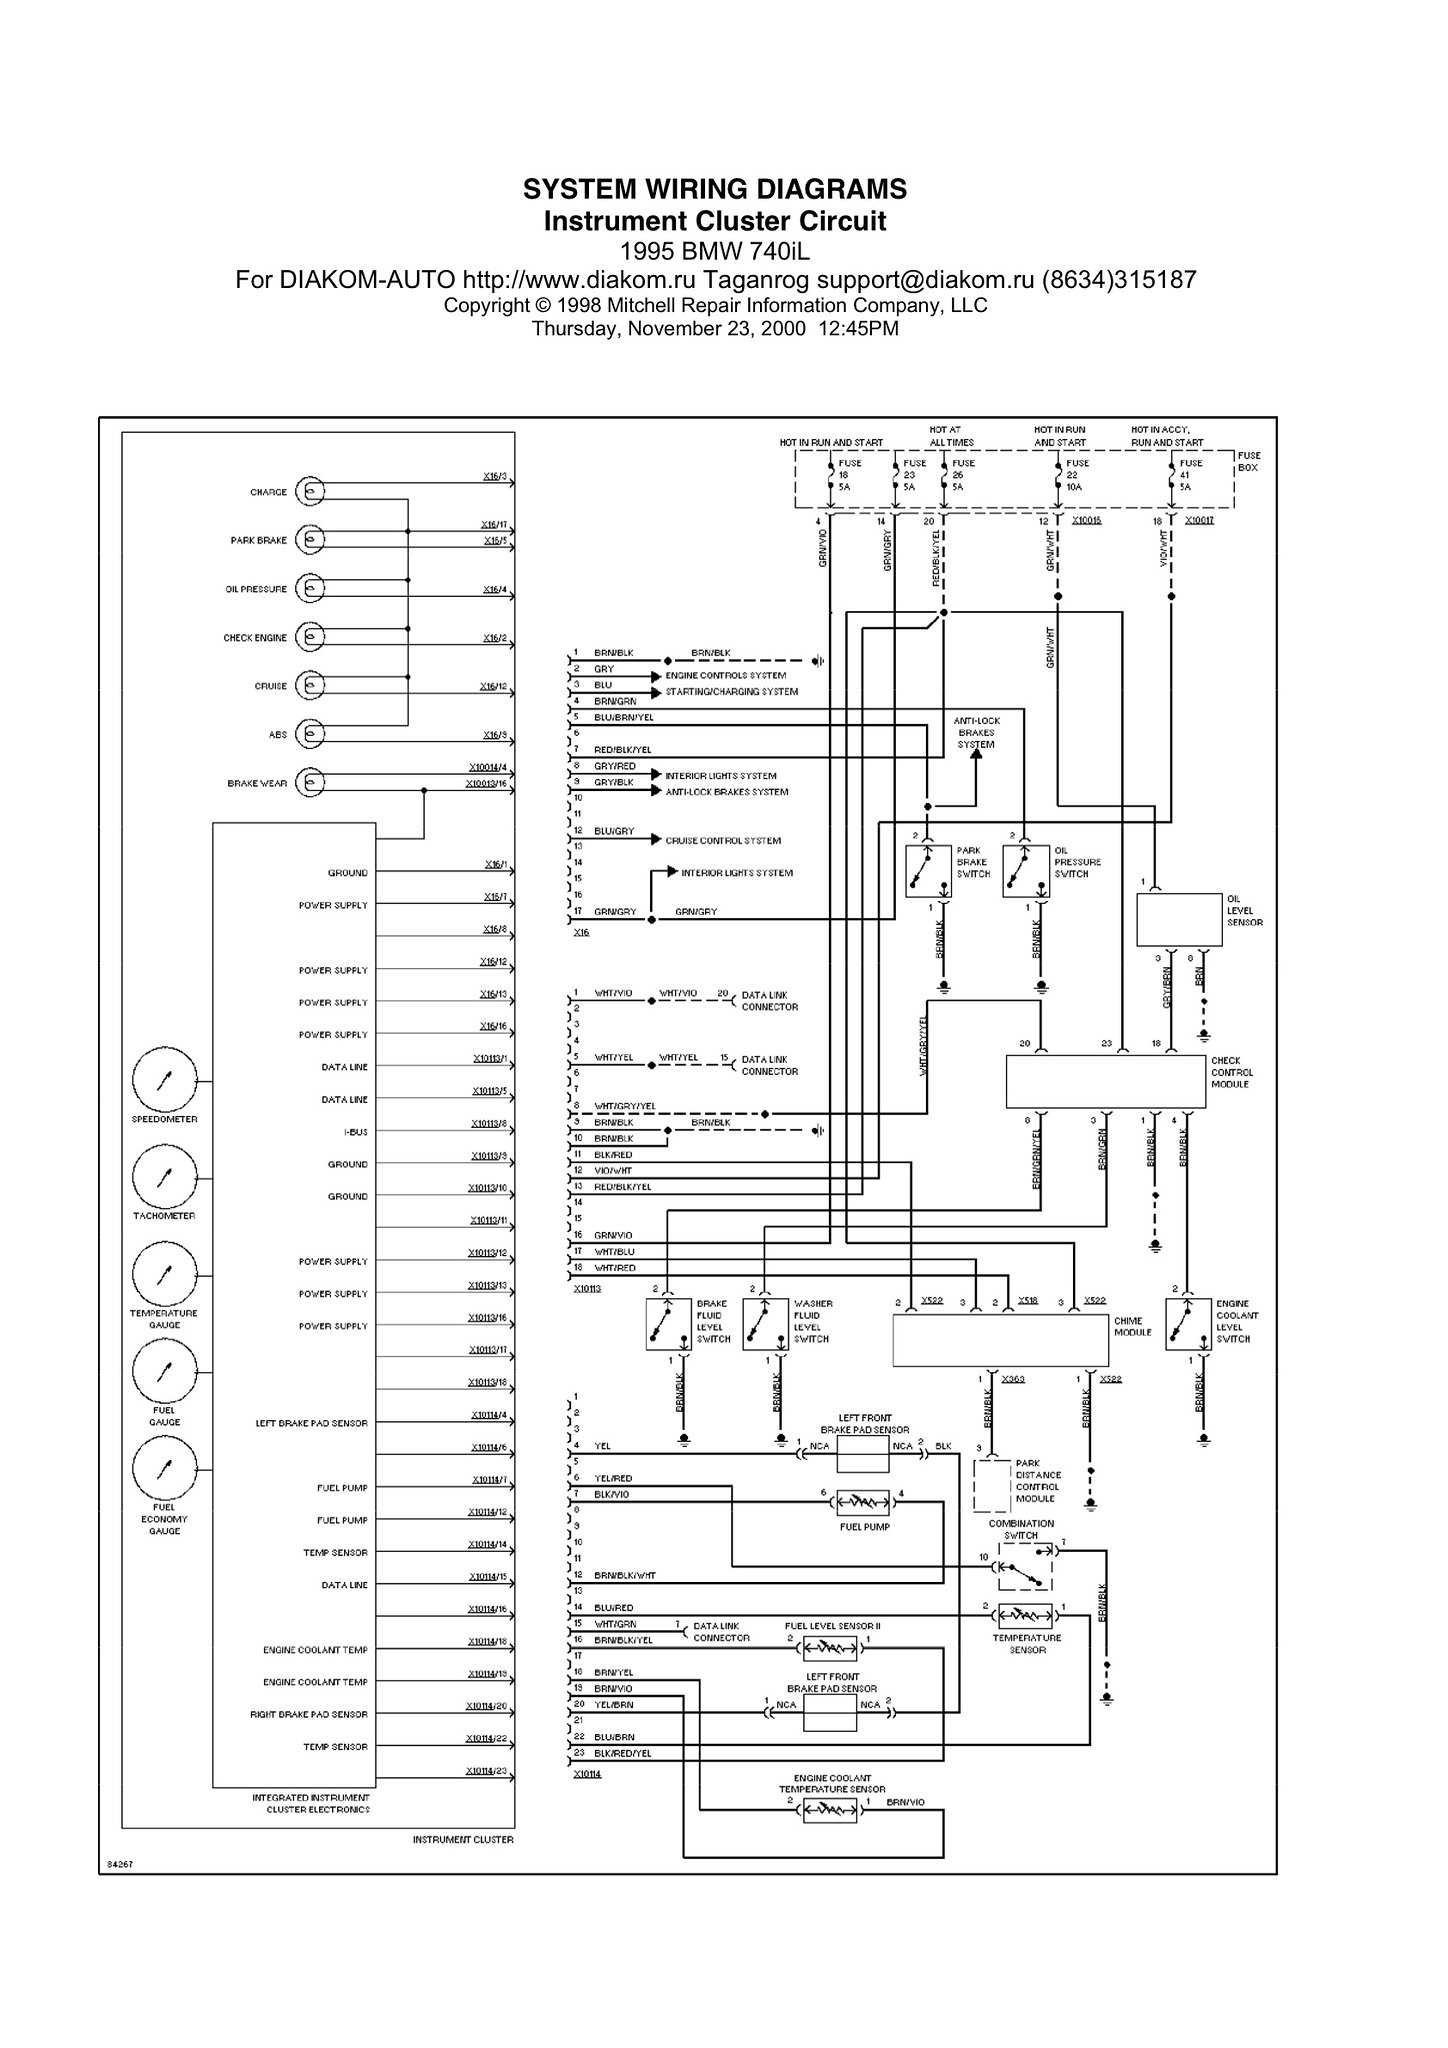 7703585142_dbc4ceb414_k bmw e39 wiring diagrams 1998 740i heated seat wiring diagram 2004 bmw 530i wiring diagrams at bakdesigns.co